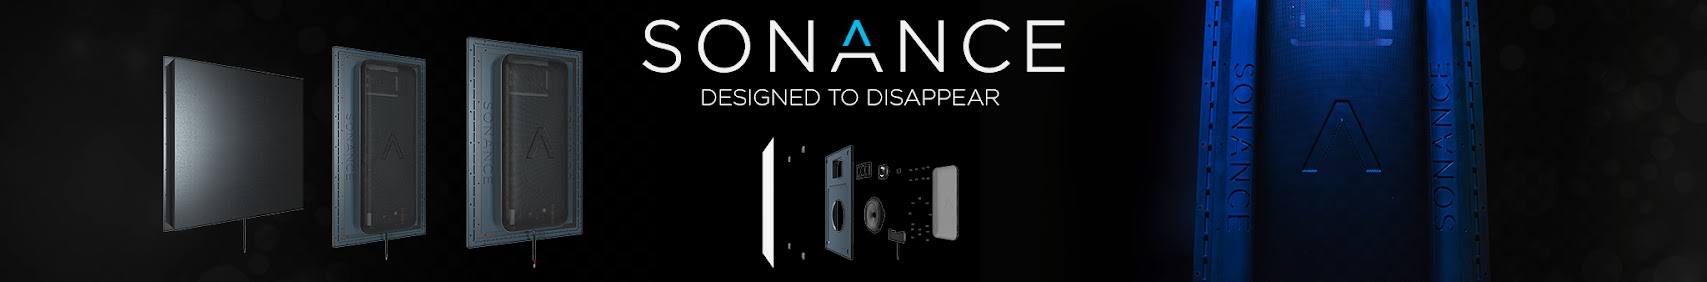 Sonance_Designed-to-disappear